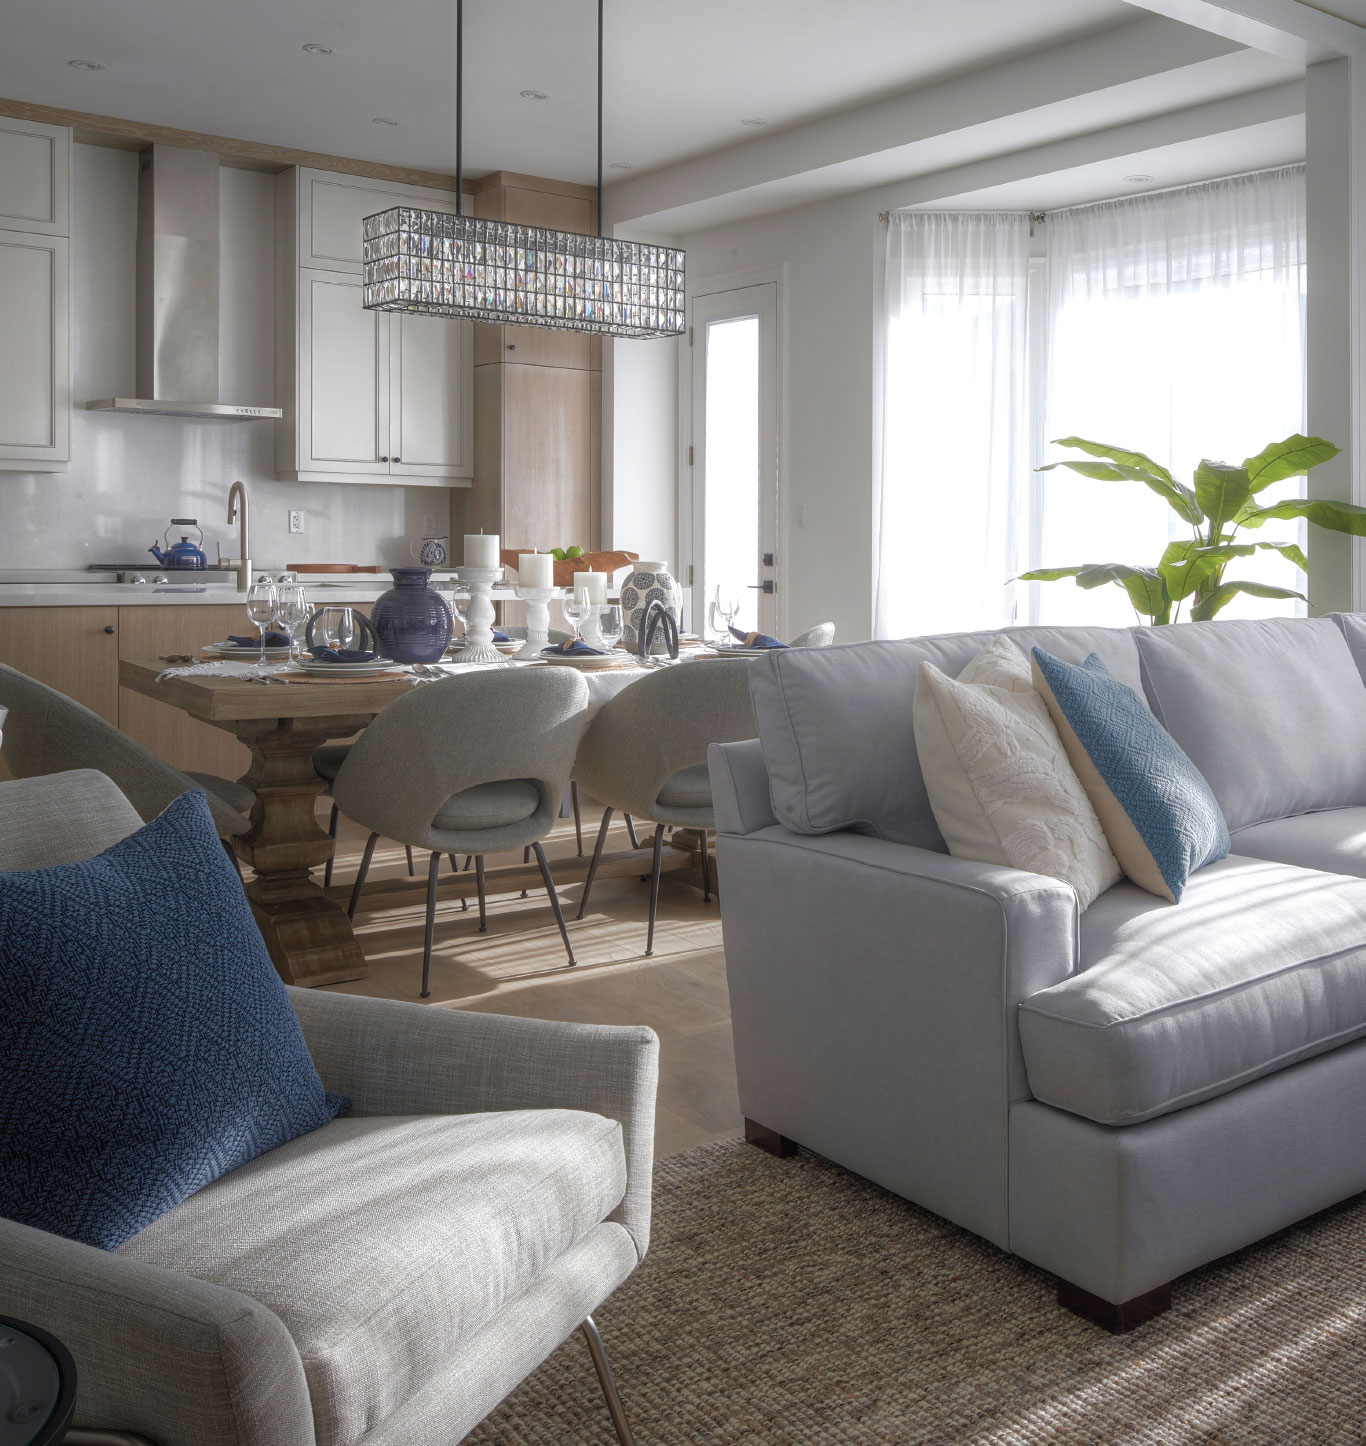 The Forest Phase 2 is a spectacular sequel in Bradford with Pottery Barn Model Home